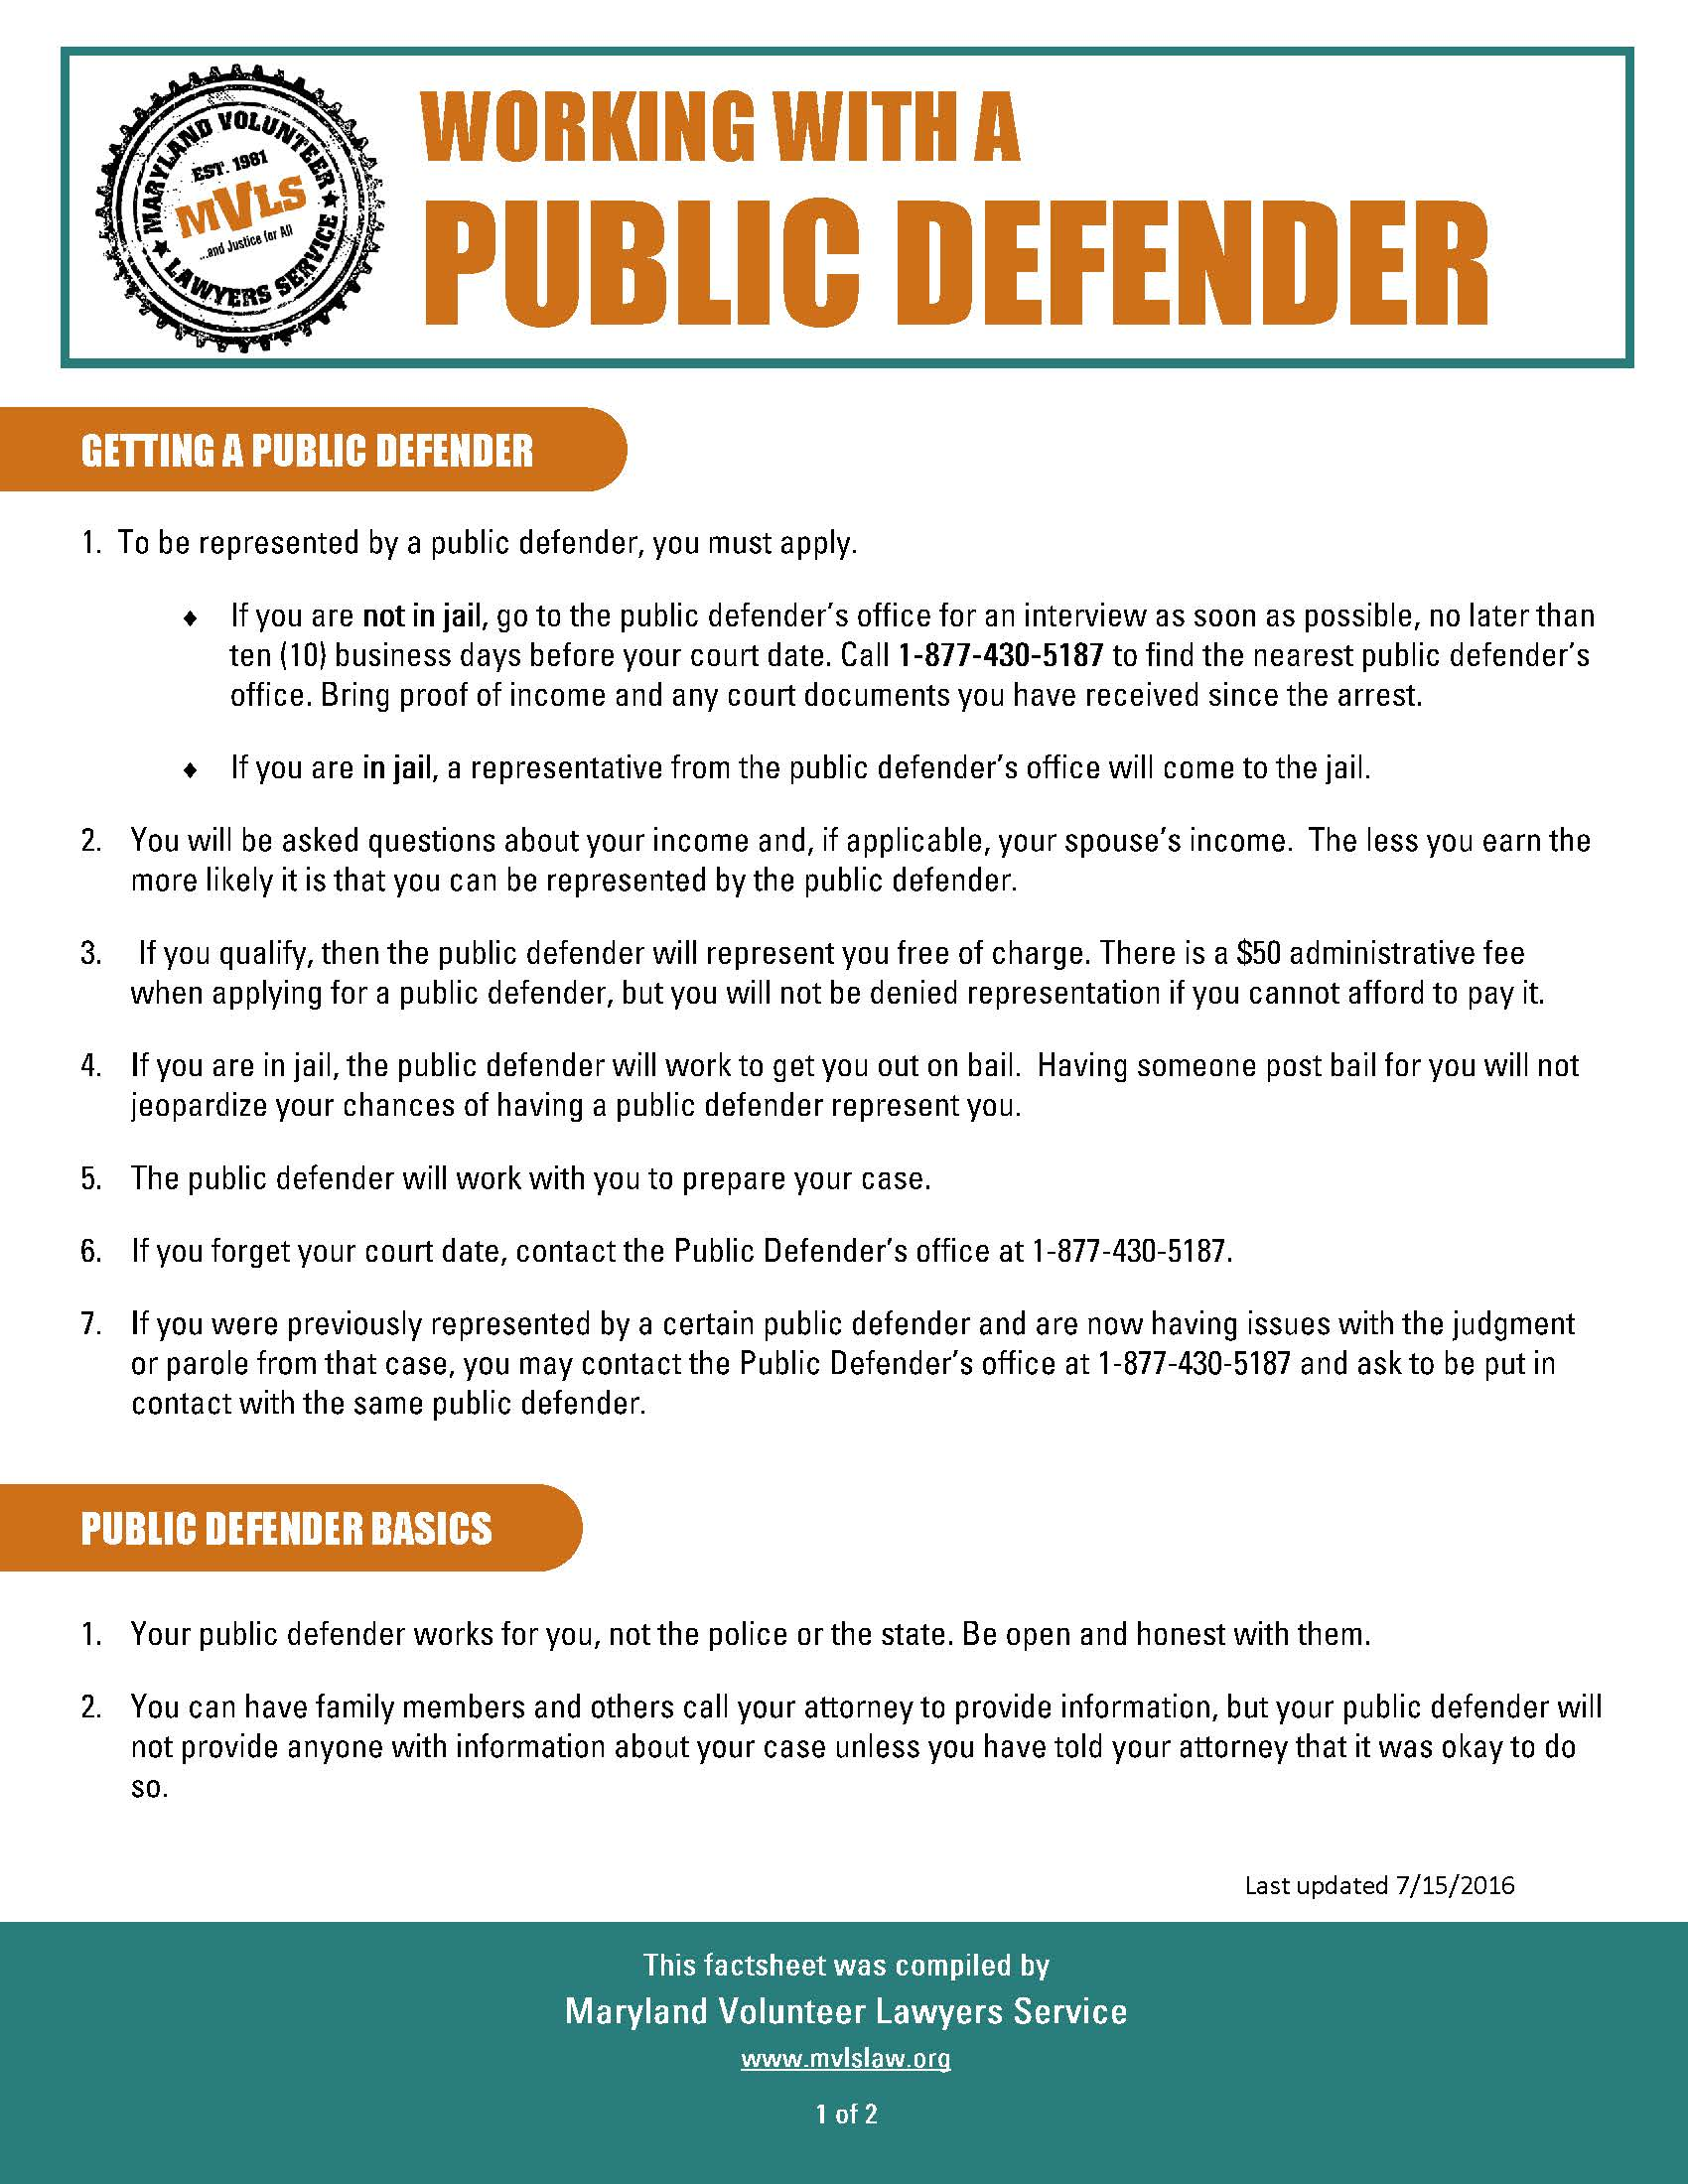 Working with a Public Defender